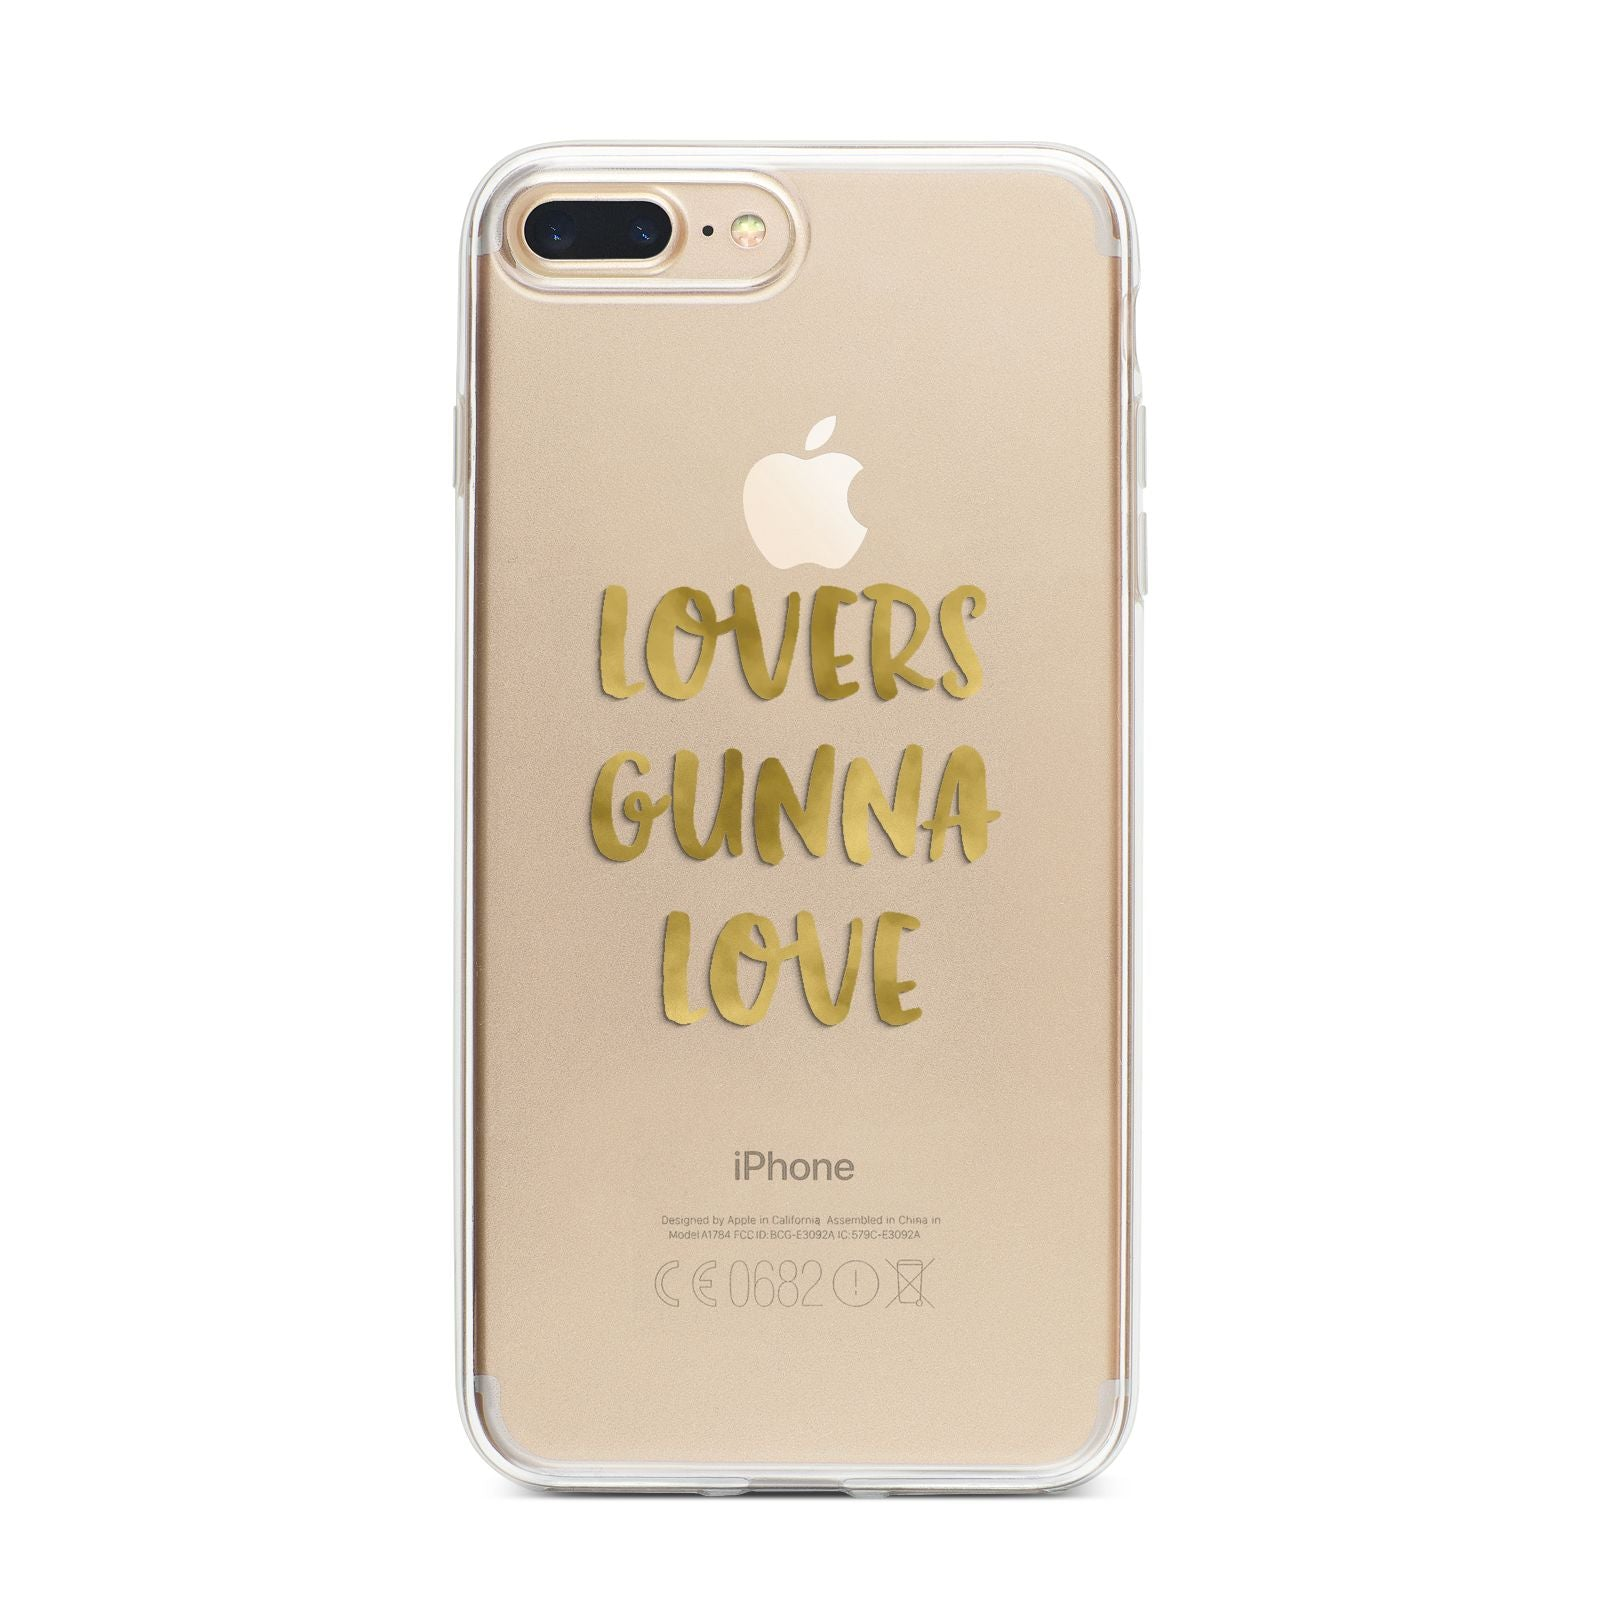 Lovers Gunna Love Real Gold Foil iPhone 7 Plus Bumper Case on Gold iPhone